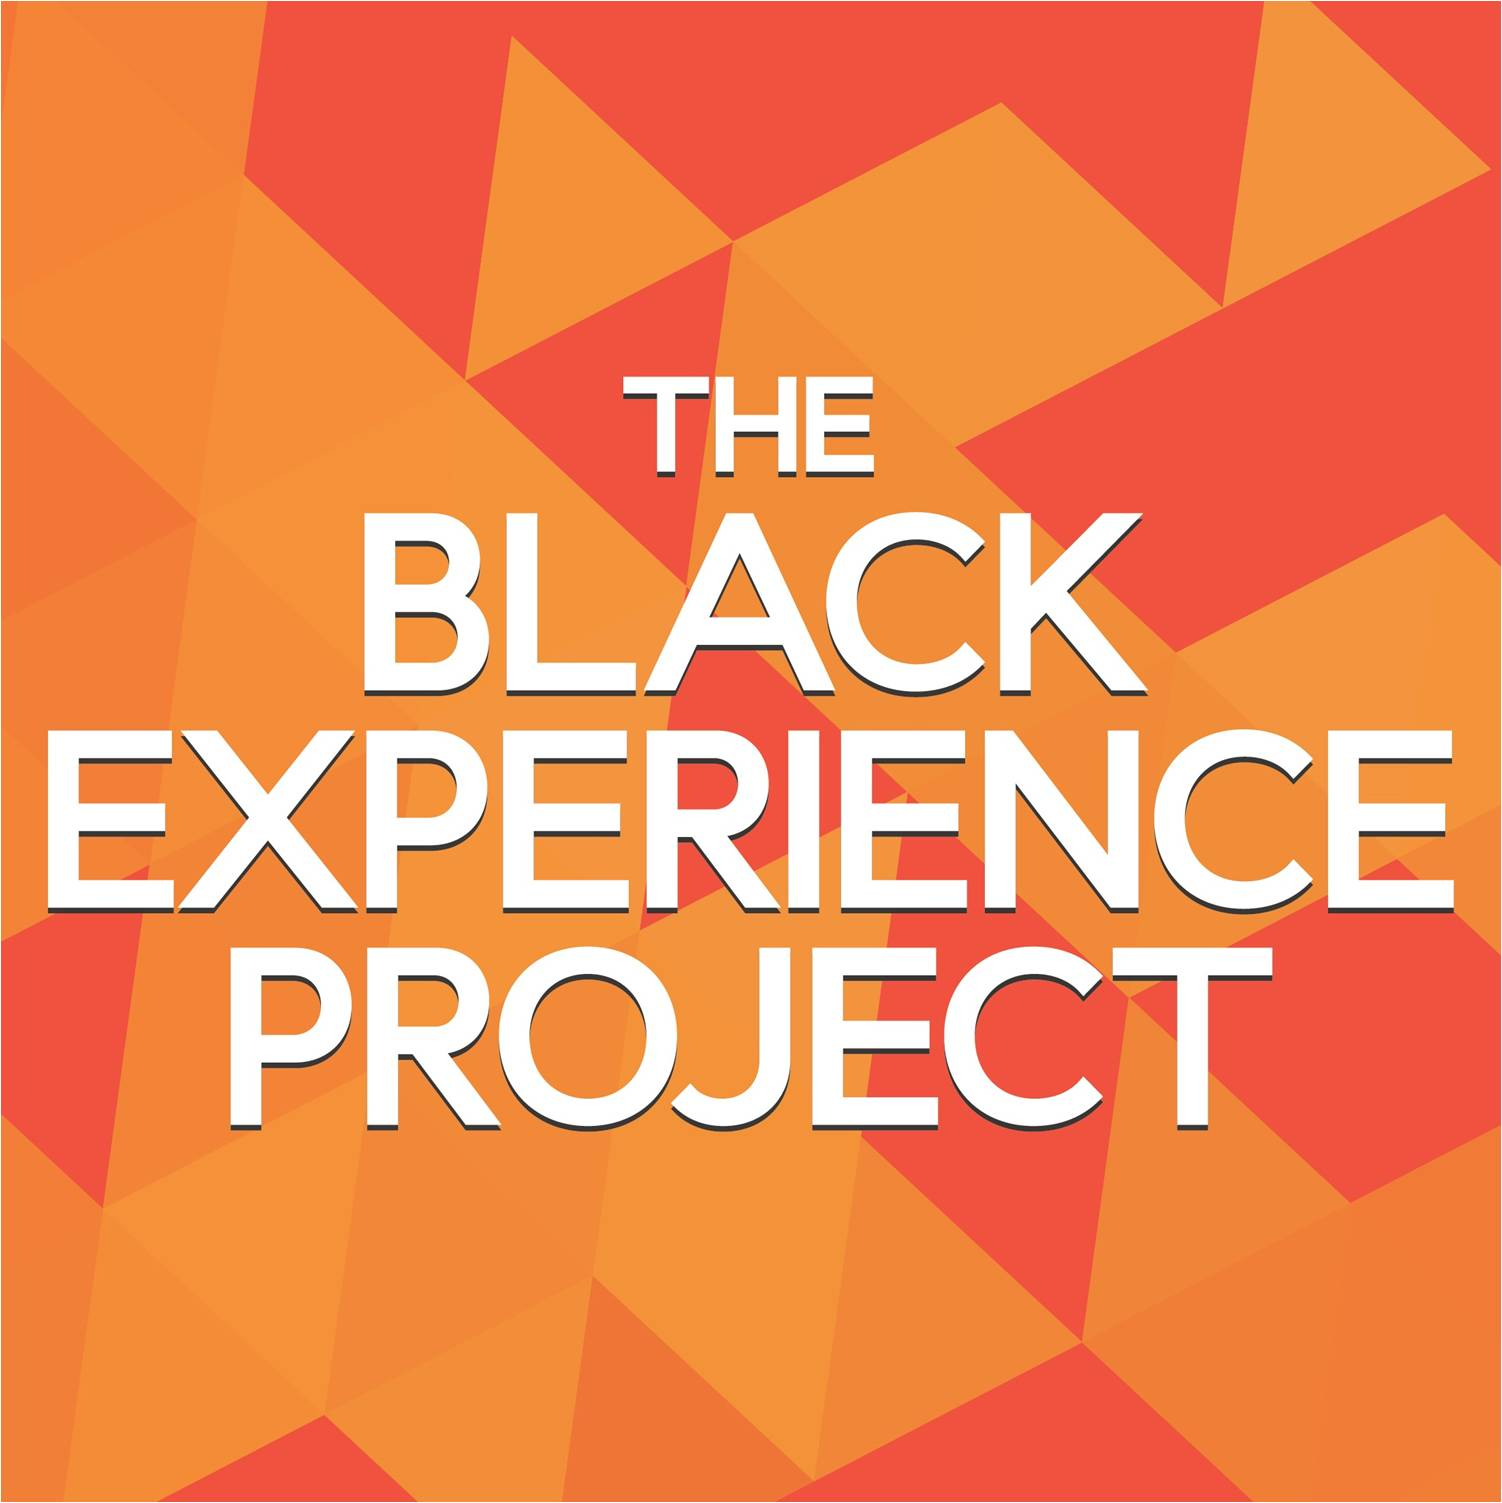 The Black Experience Project